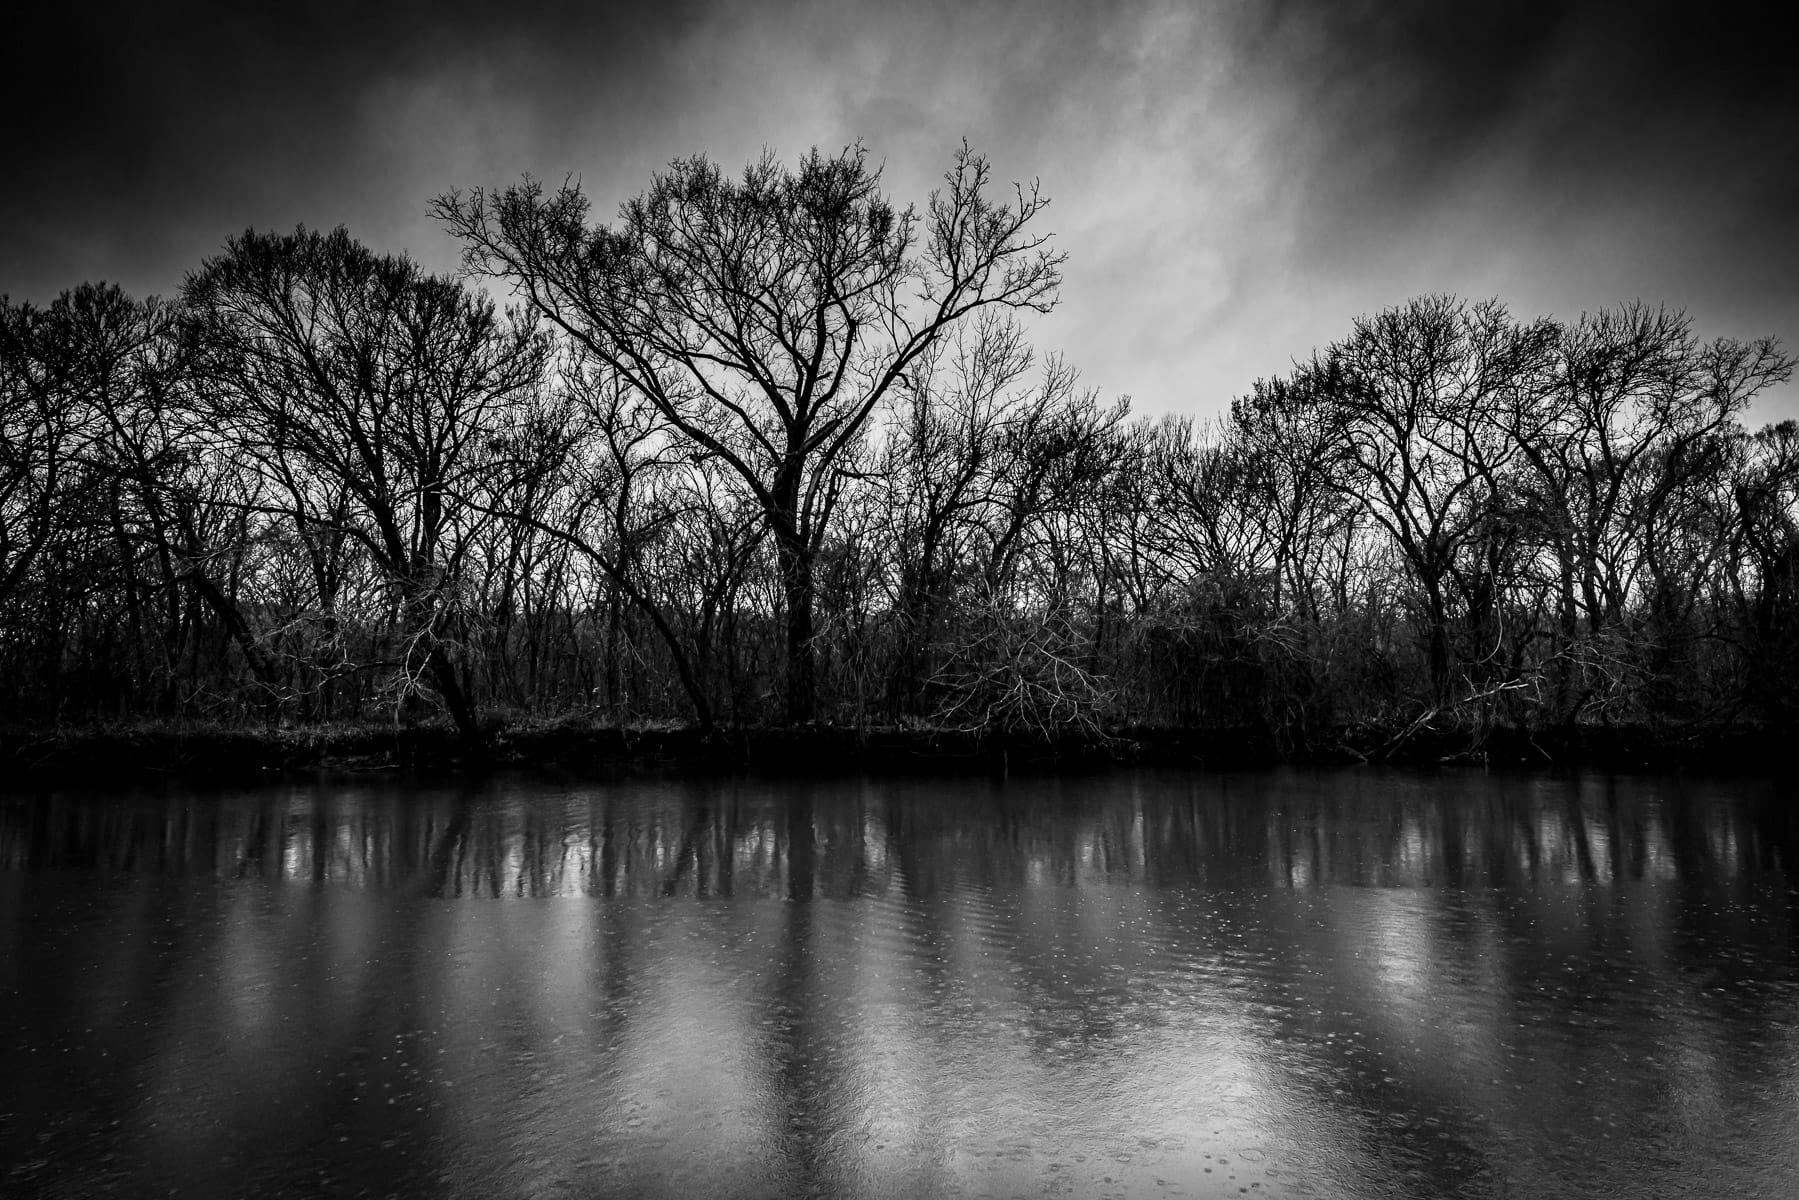 Trees on the far bank of the Navasota River at Fort Parker State Park, Texas.